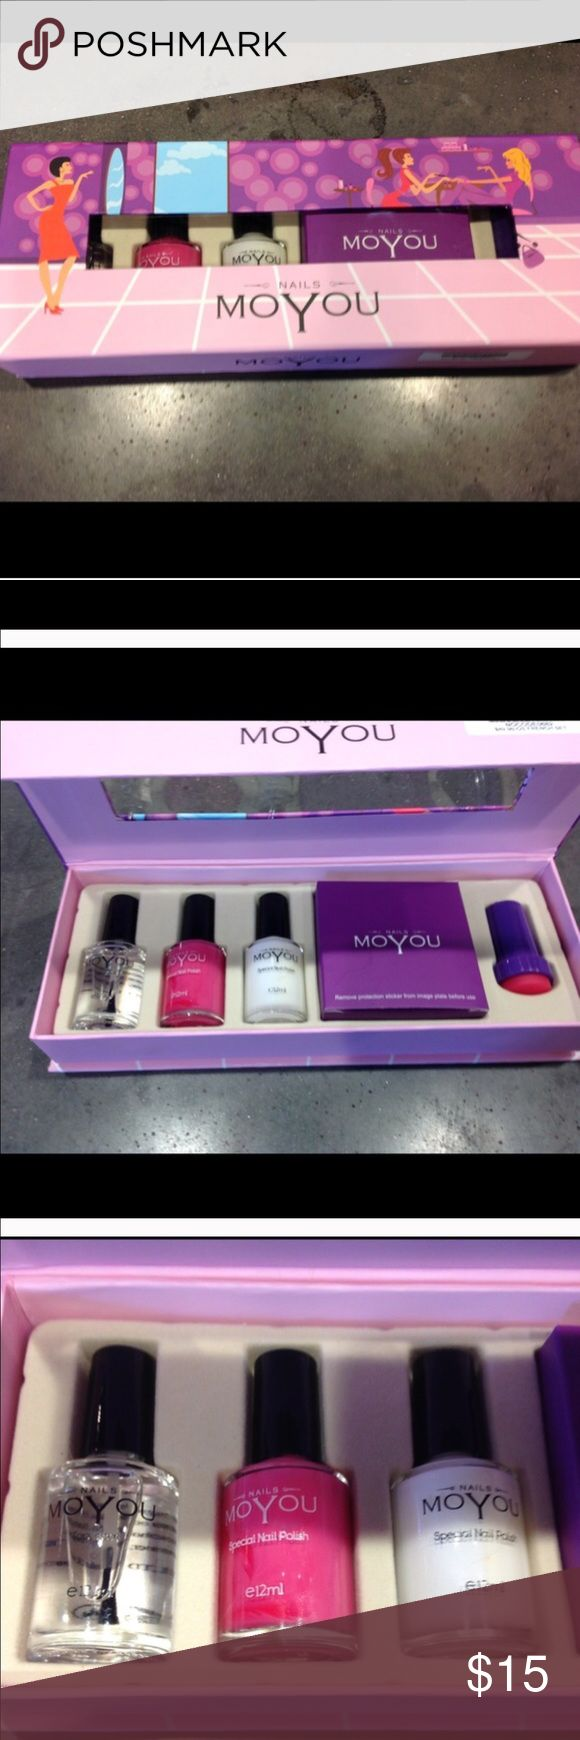 Mo You French Manicure set NEW in box Great kit for a French manicure with 4 plates for designs. Retails for $35 Mo YOU Other